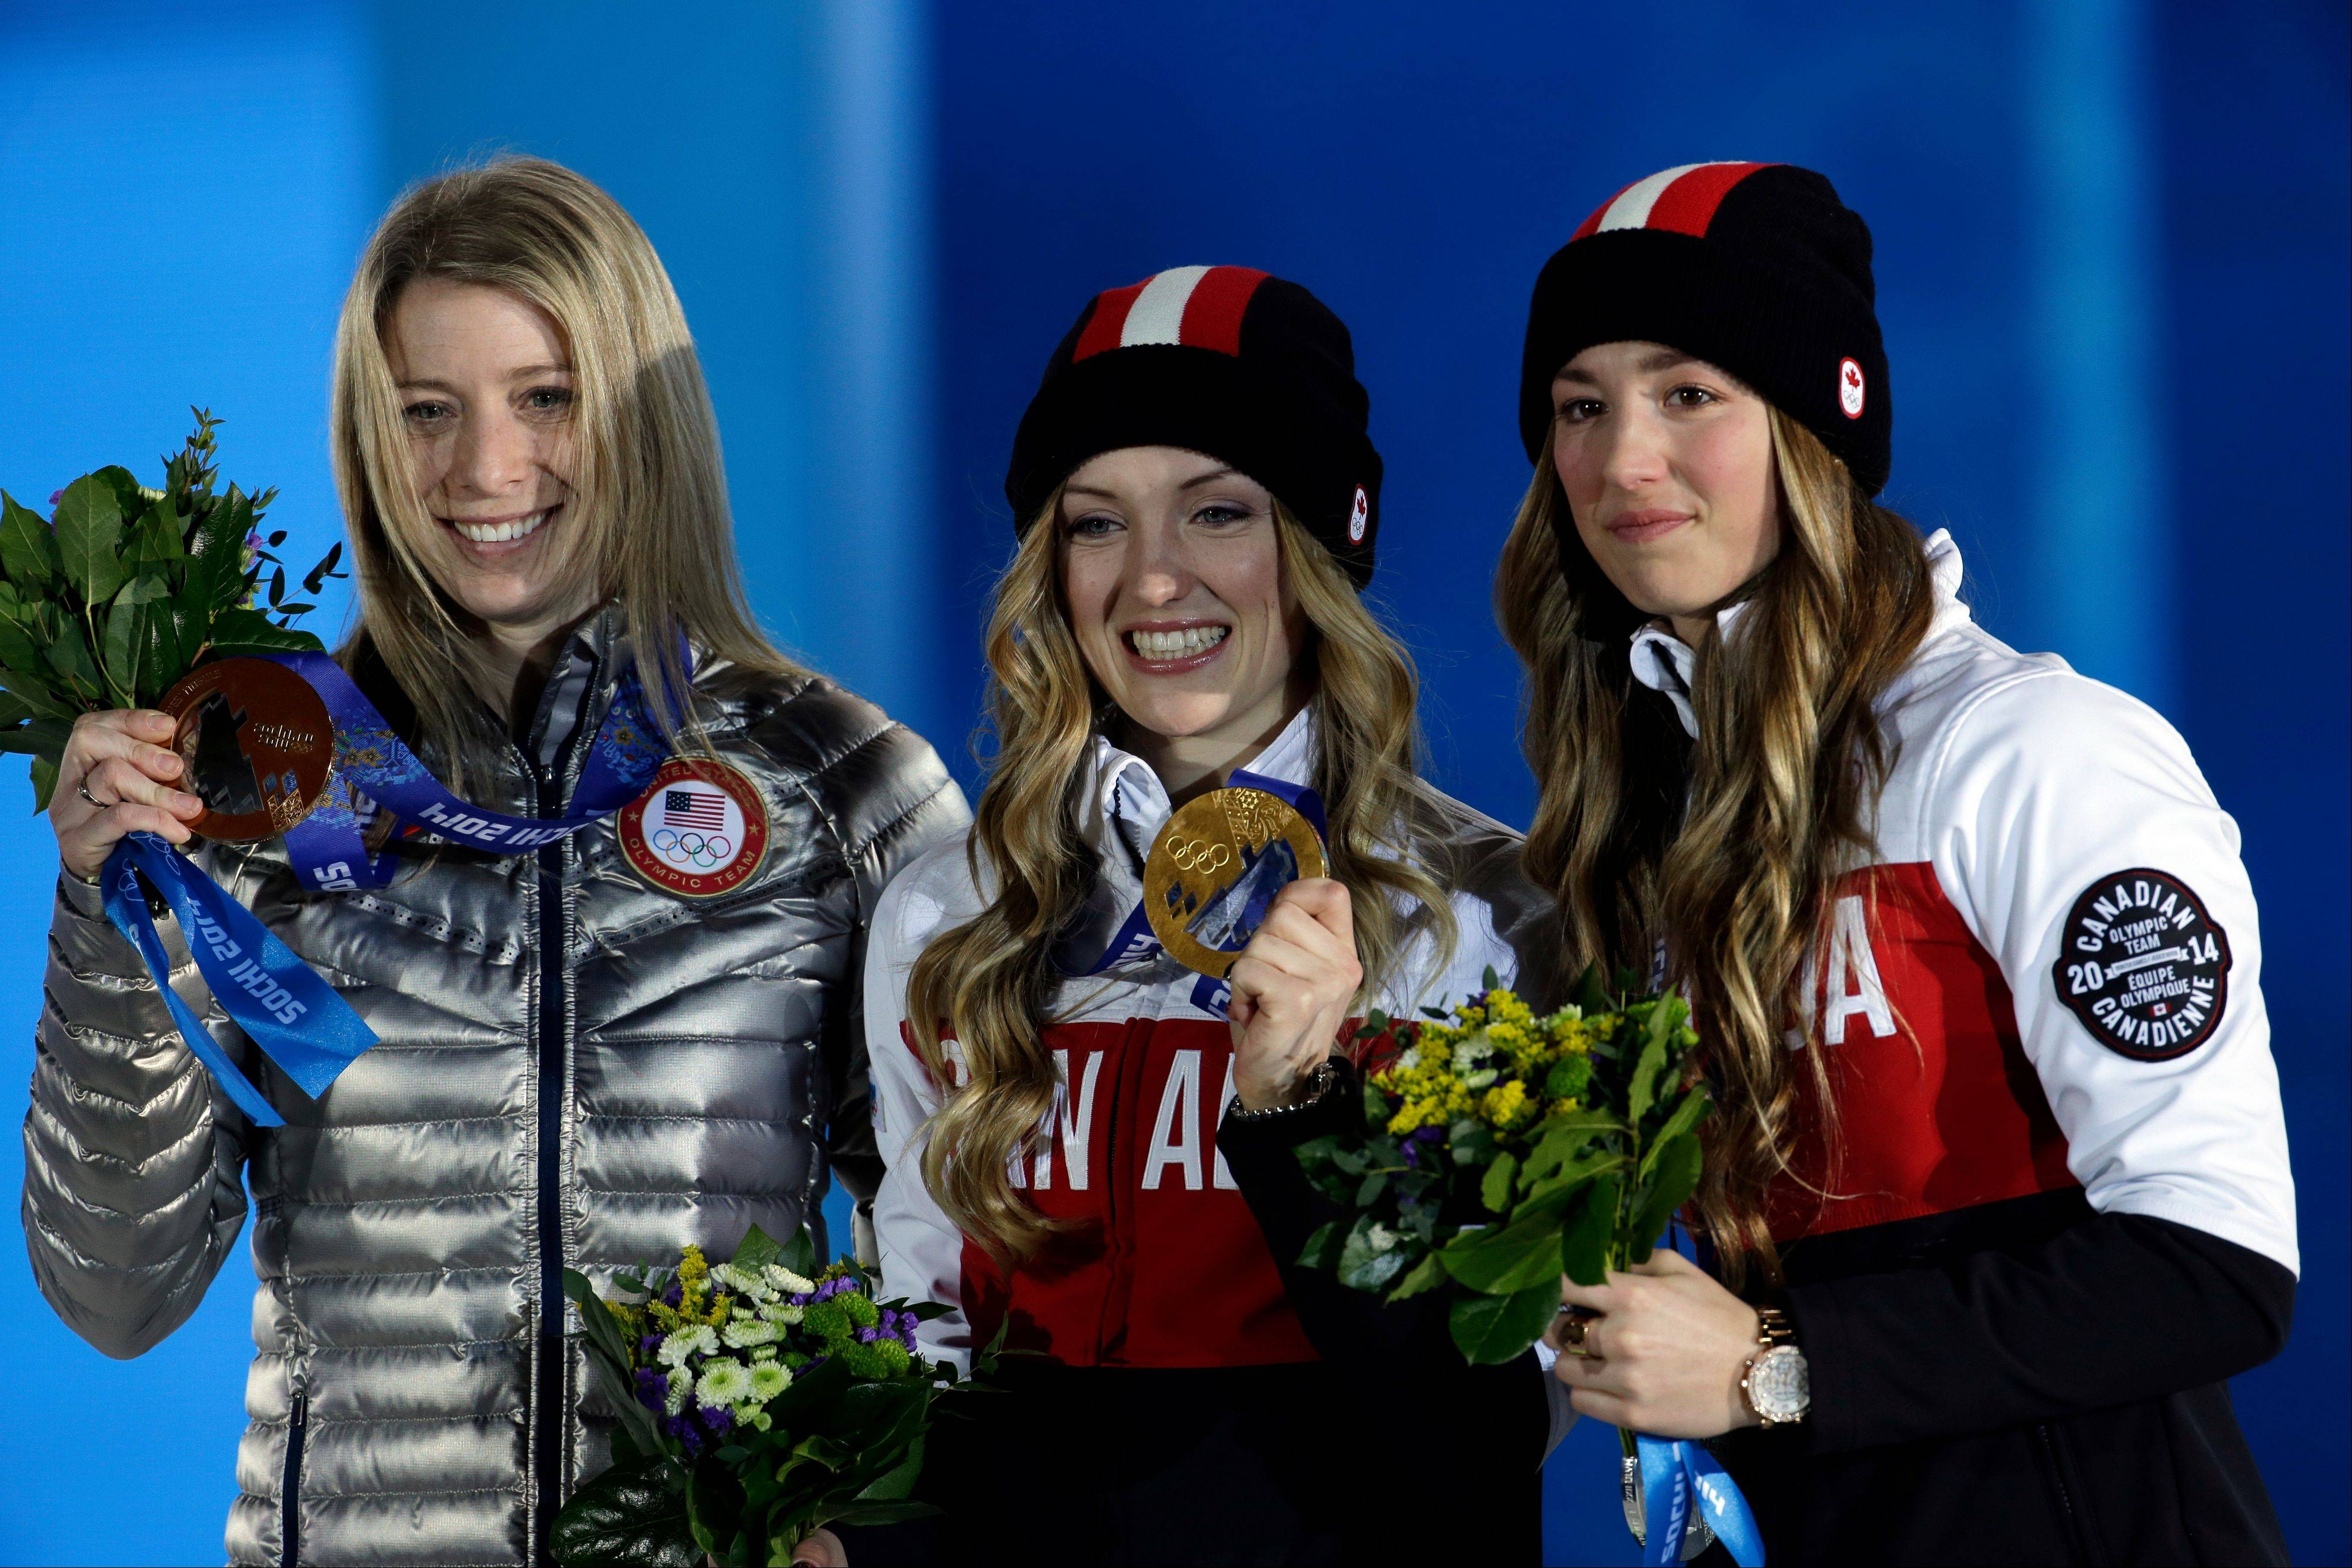 Women's moguls medalists from left, Hannah Kearney of the United States, bronze, Canada's Justine Dufour-Lapointe, gold, and her sister silver medalist Chloe Dufour-Lapointe pose during their medal ceremony at the 2014 Winter Olympics, Sunday, Feb. 9, 2014, in Sochi, Russia.